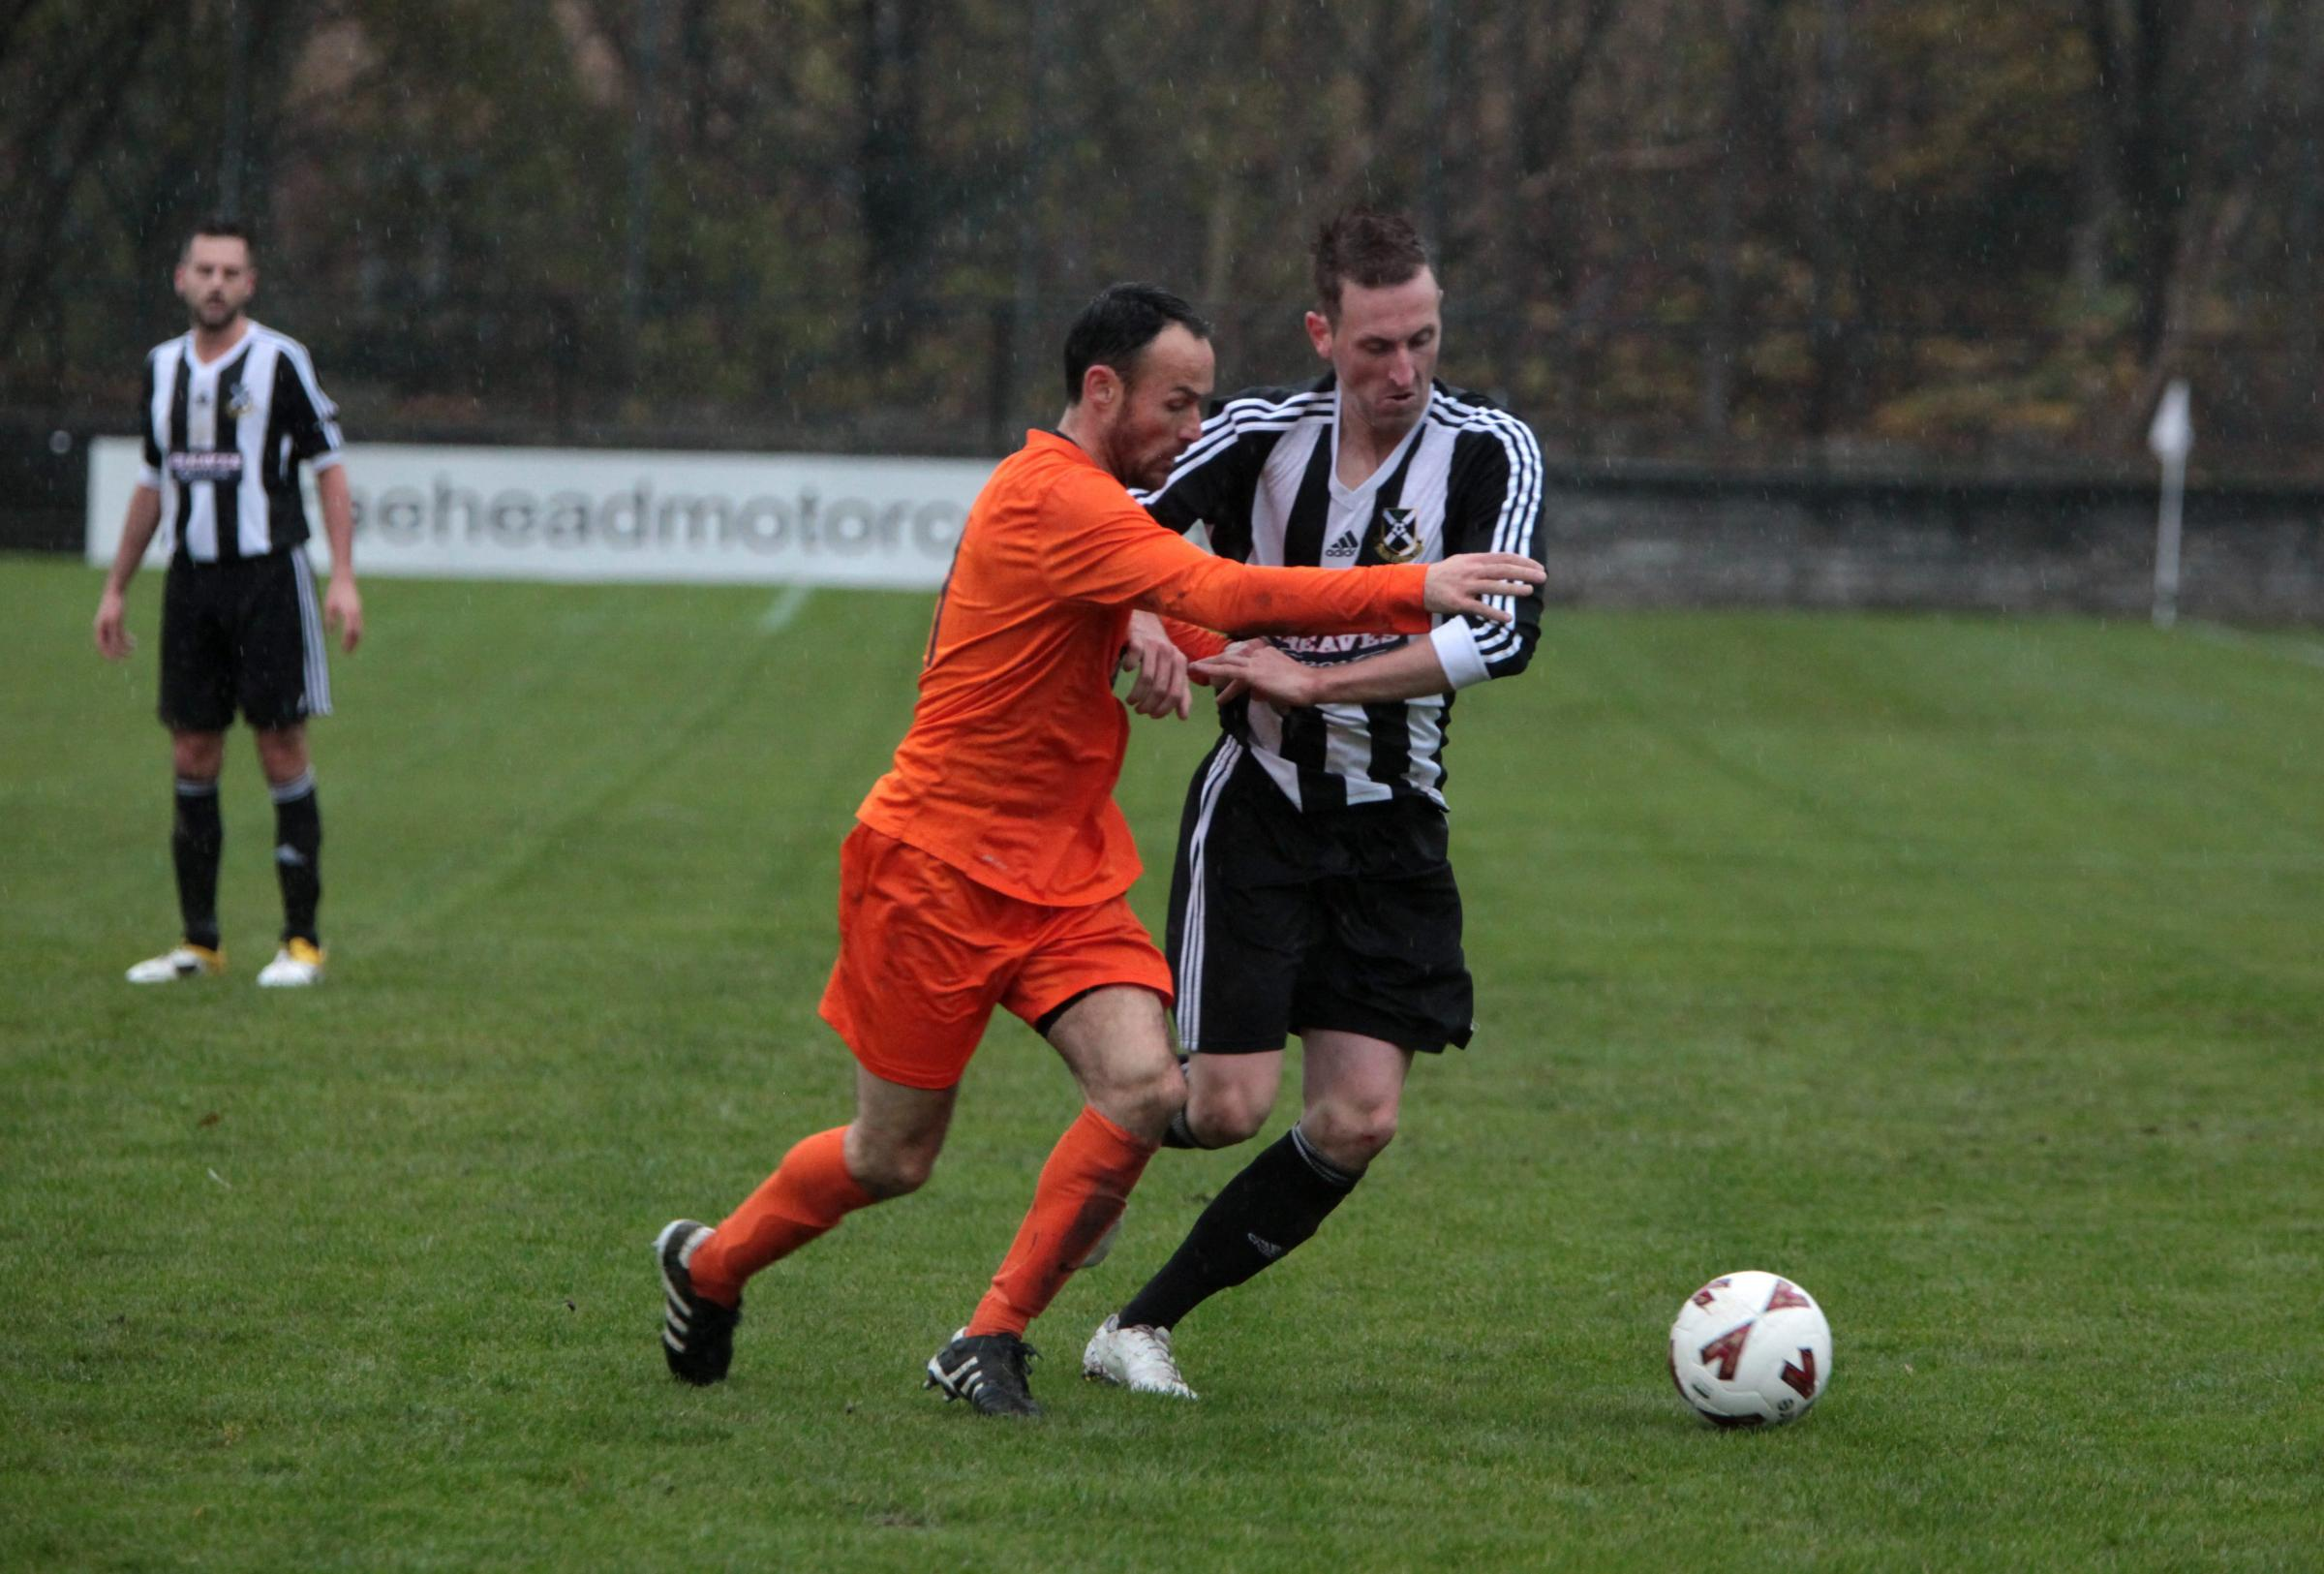 Pollock FC v Yoker FC at Newlandsfield ; David Winters Pollock holds off Yoker player 8/11/14. (39699780)